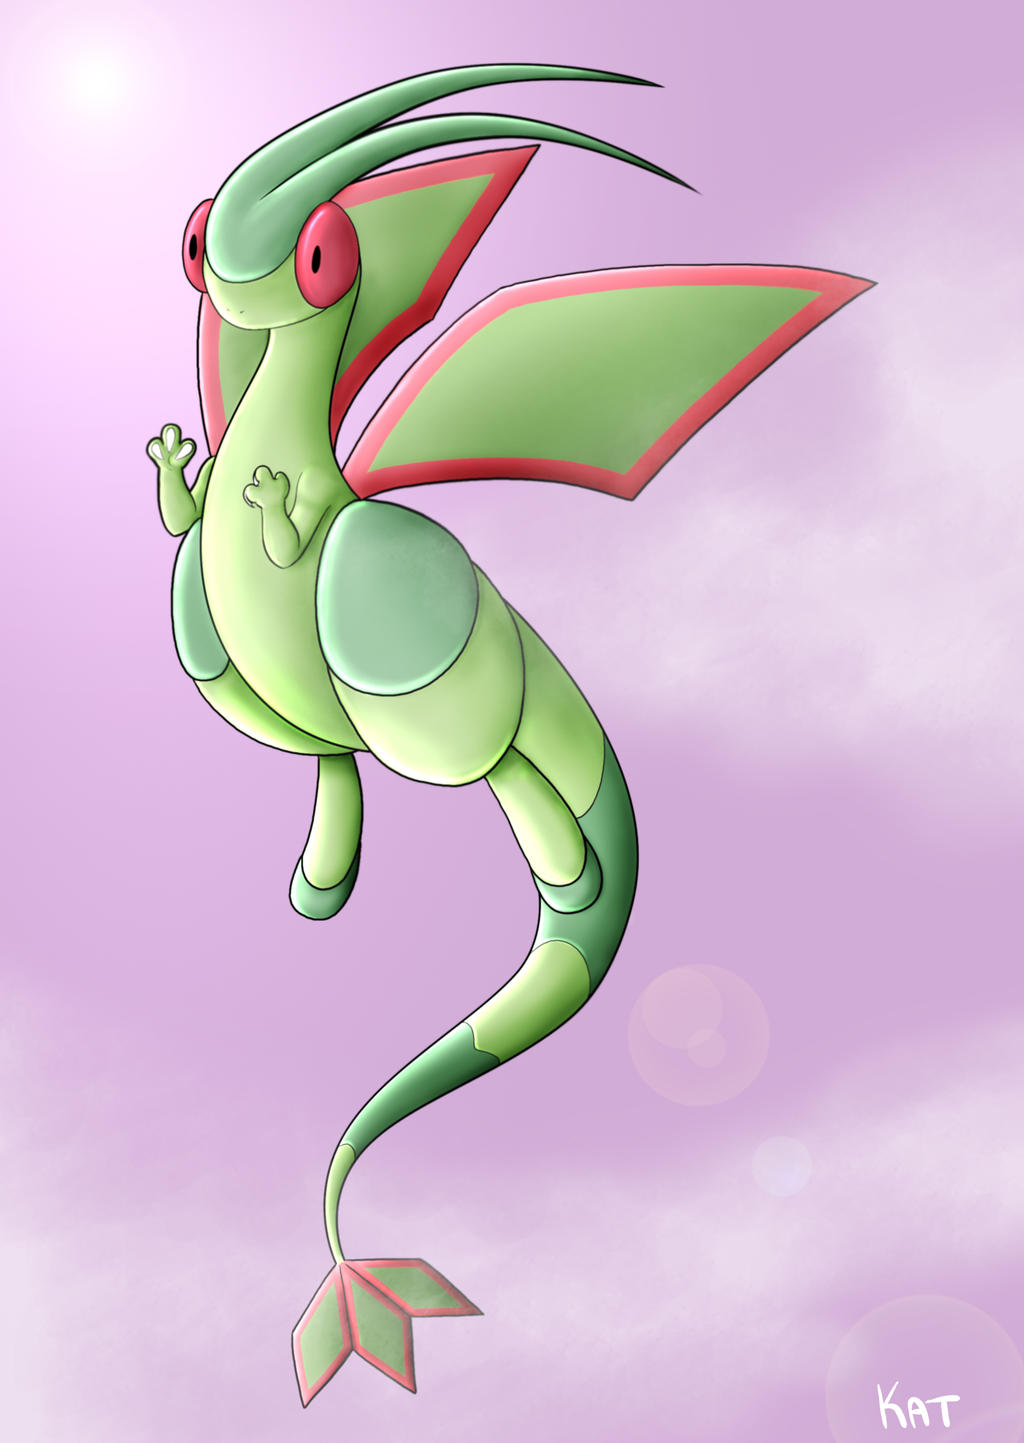 Flygon by KatrinaBonebrake on DeviantArt